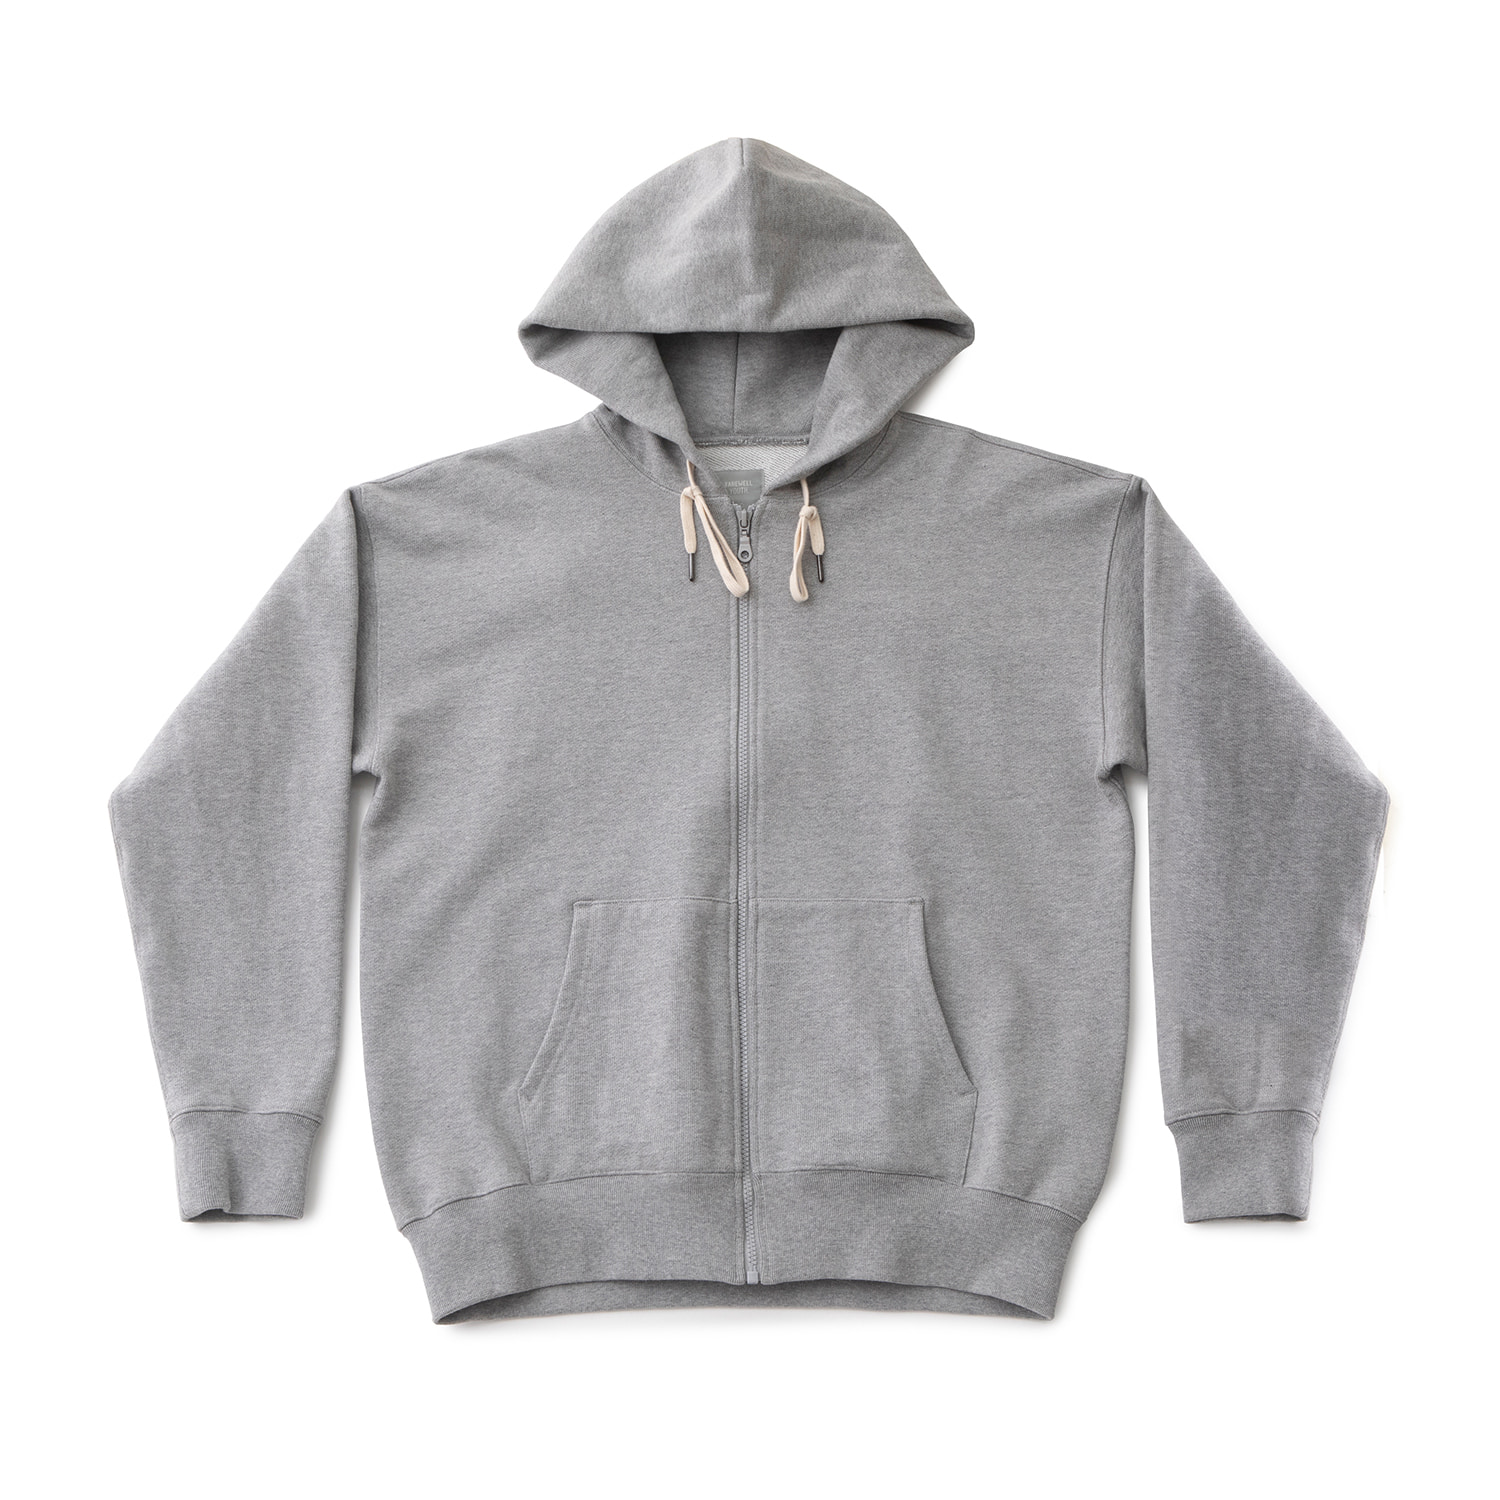 Upright Hood Jacket (Heather Grey)